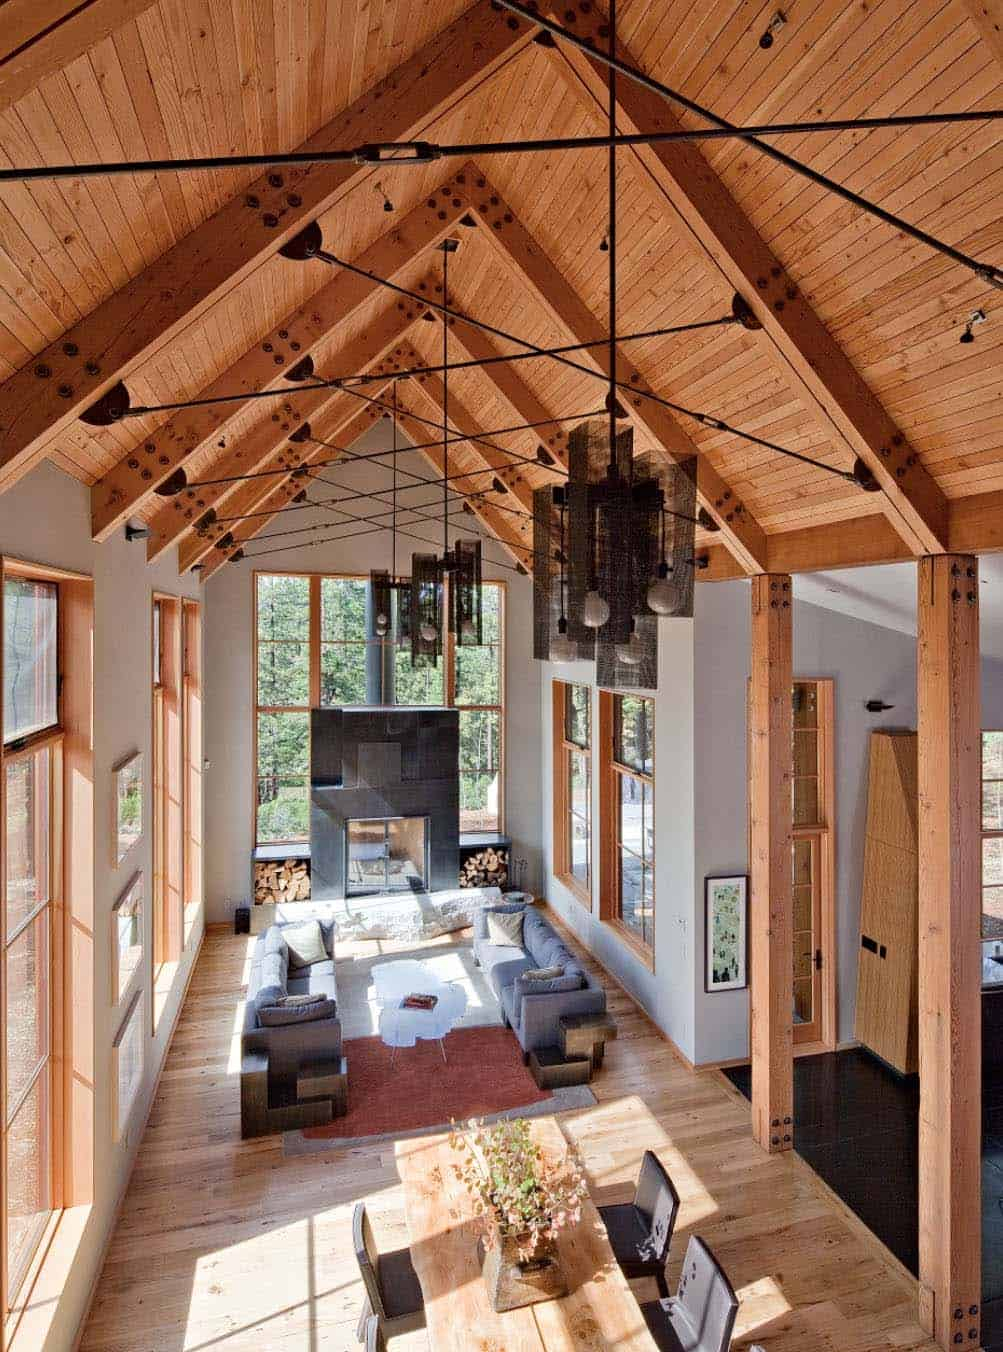 Rustic-Modern-Home-WA Design-04-1 Kindesign